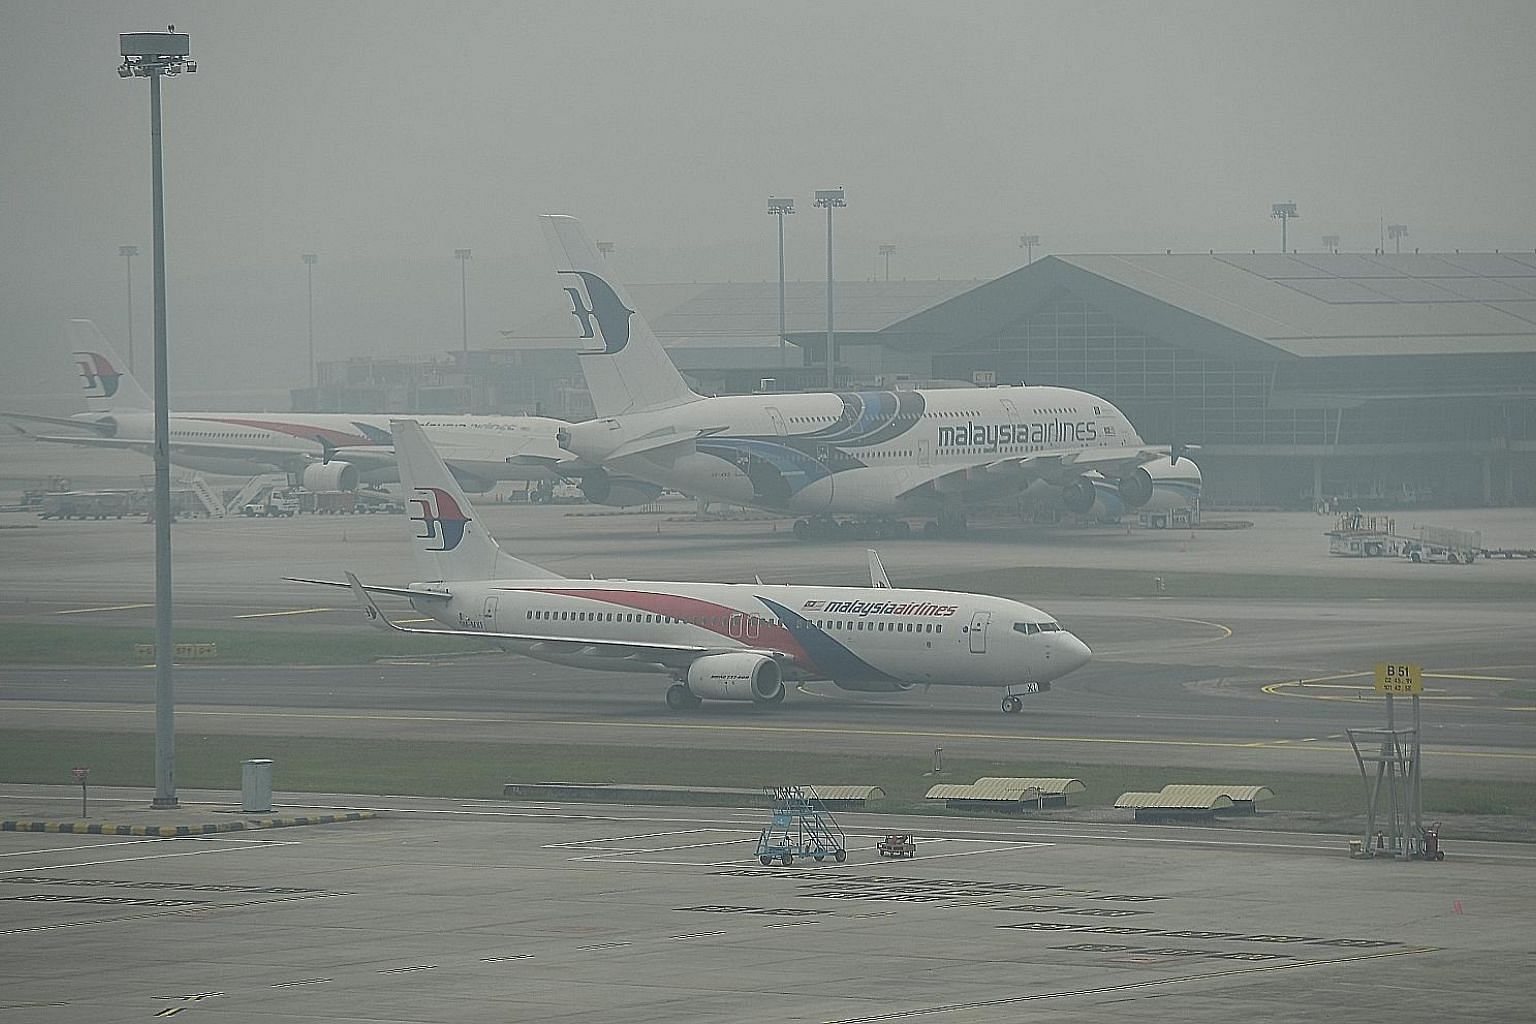 """Hazy conditions at Kuala Lumpur International Airport around noon yesterday. Air quality deteriorated to """"very unhealthy"""" levels yesterday on an official index in many parts of Peninsular Malaysia, forcing school closures."""